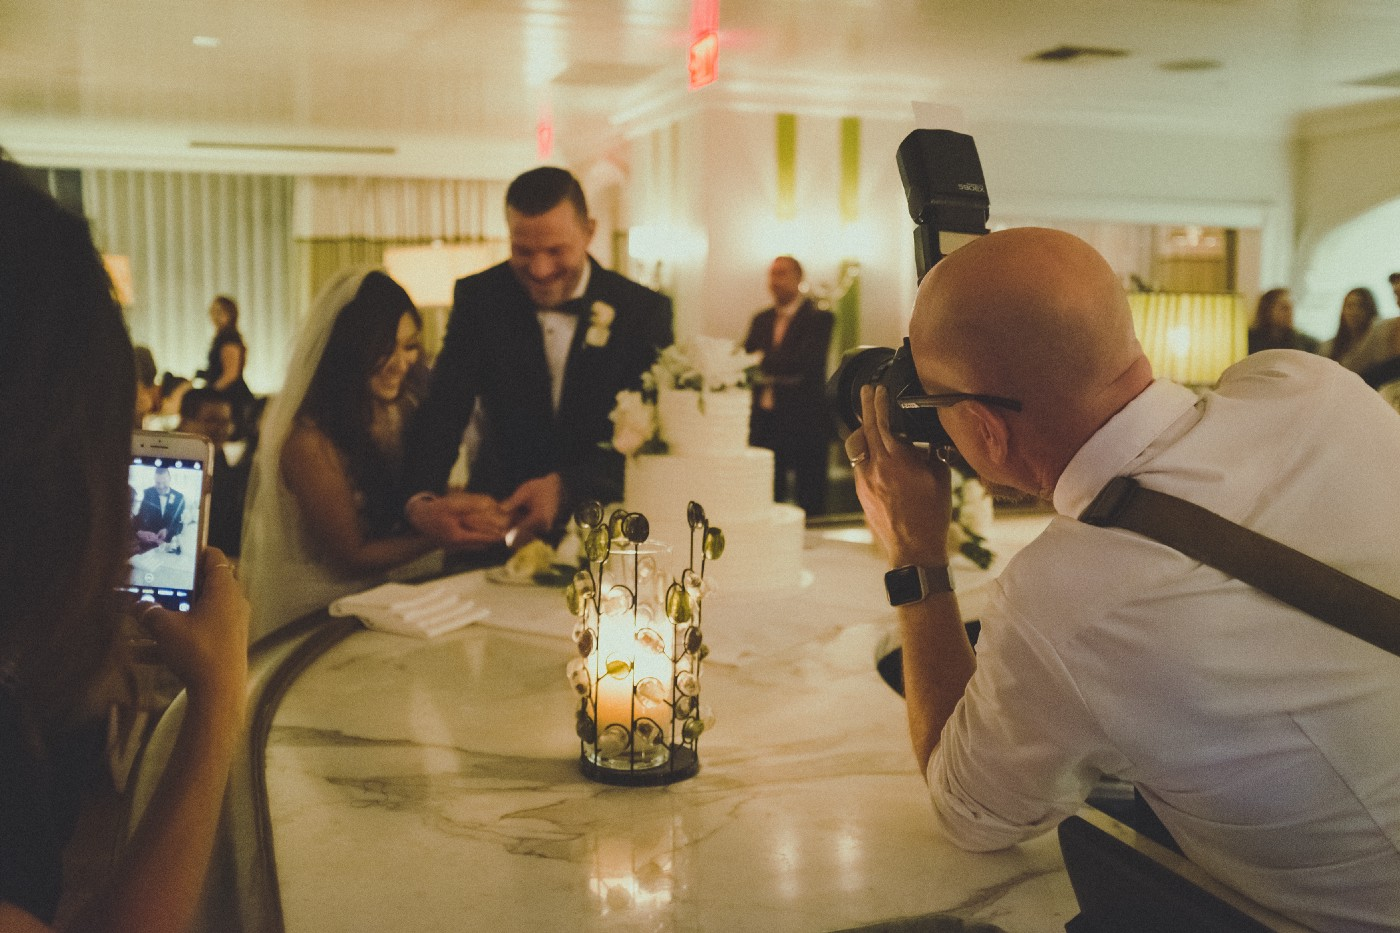 A photographer taking a picture of a bride and groom cutting the cake at their wedding reception.